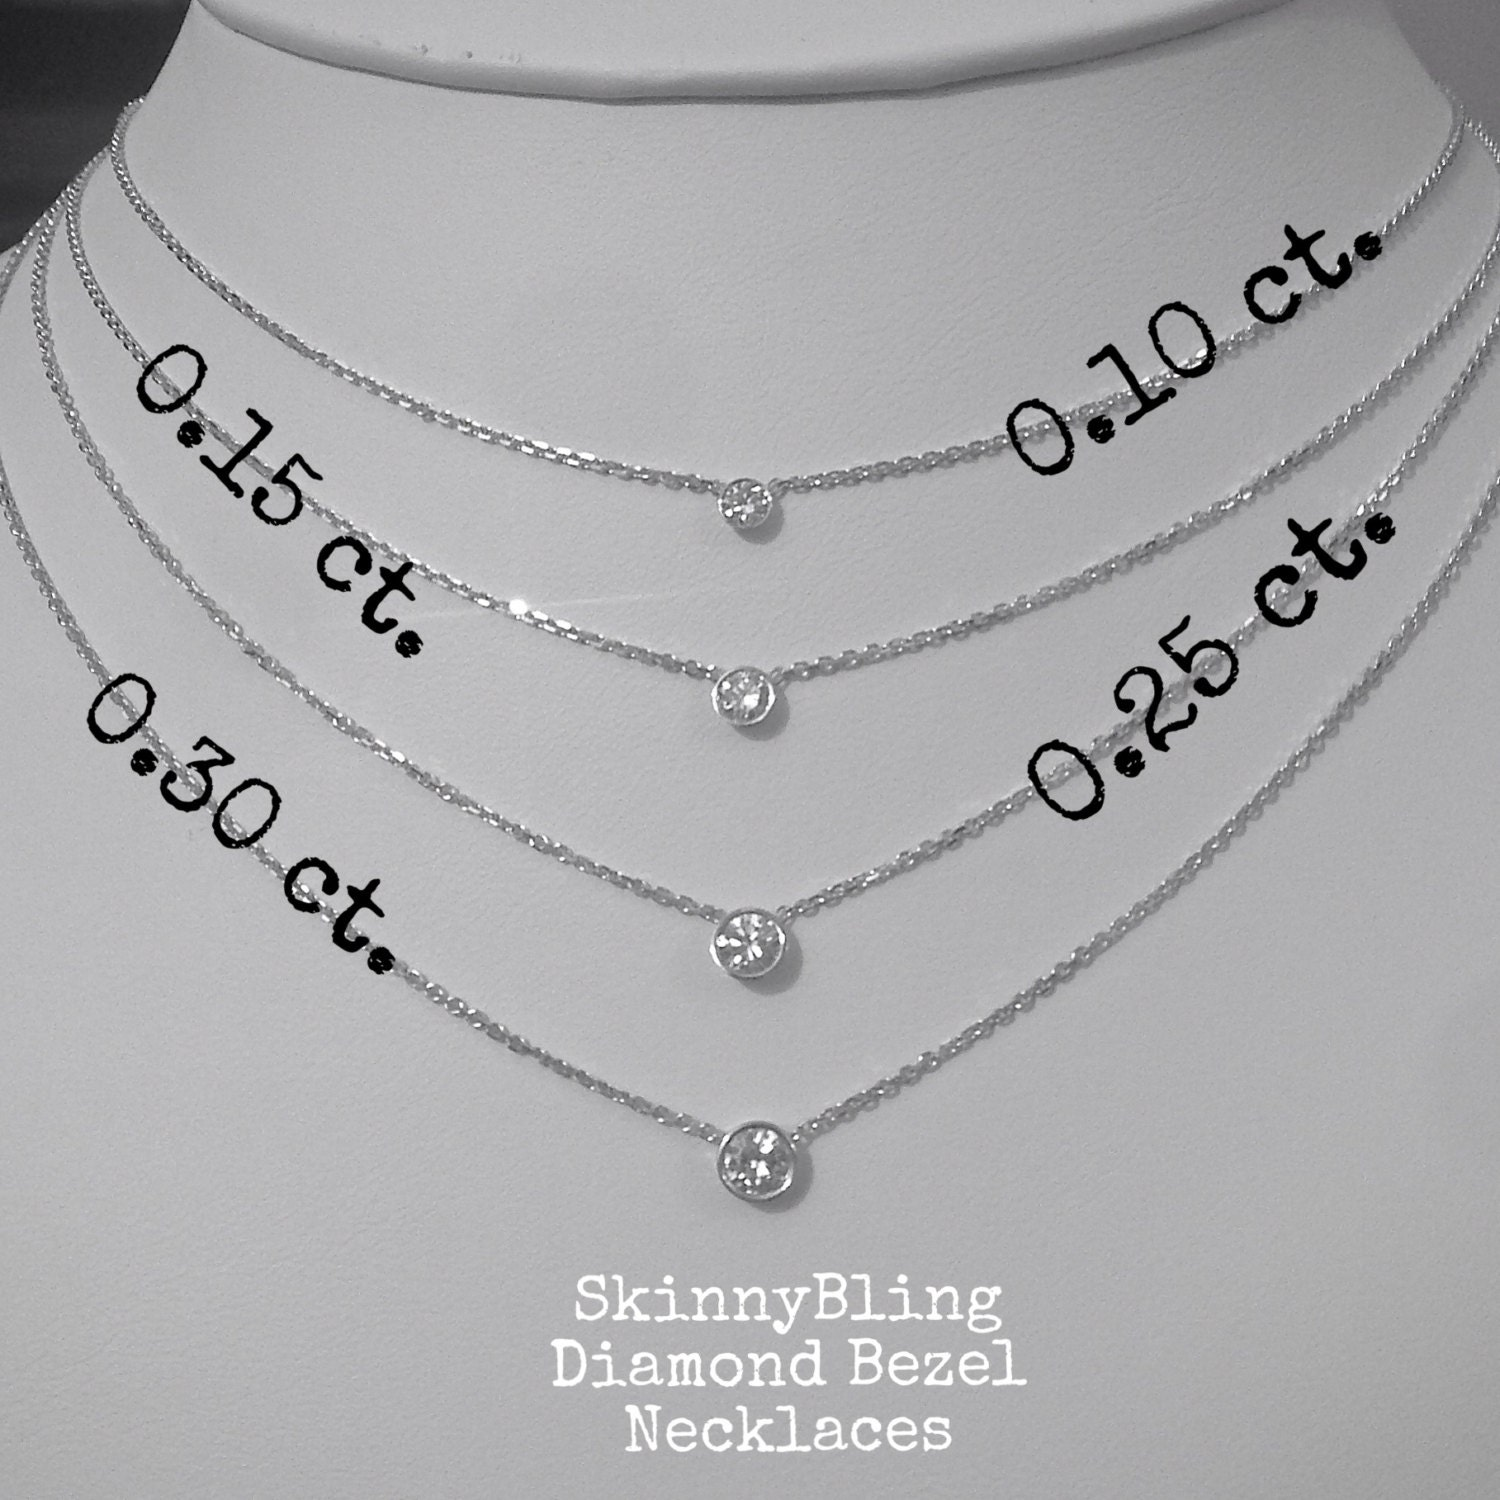 Bezel set 025 ct diamond solitaire necklace 14k white or yellow skinnybling mozeypictures Image collections